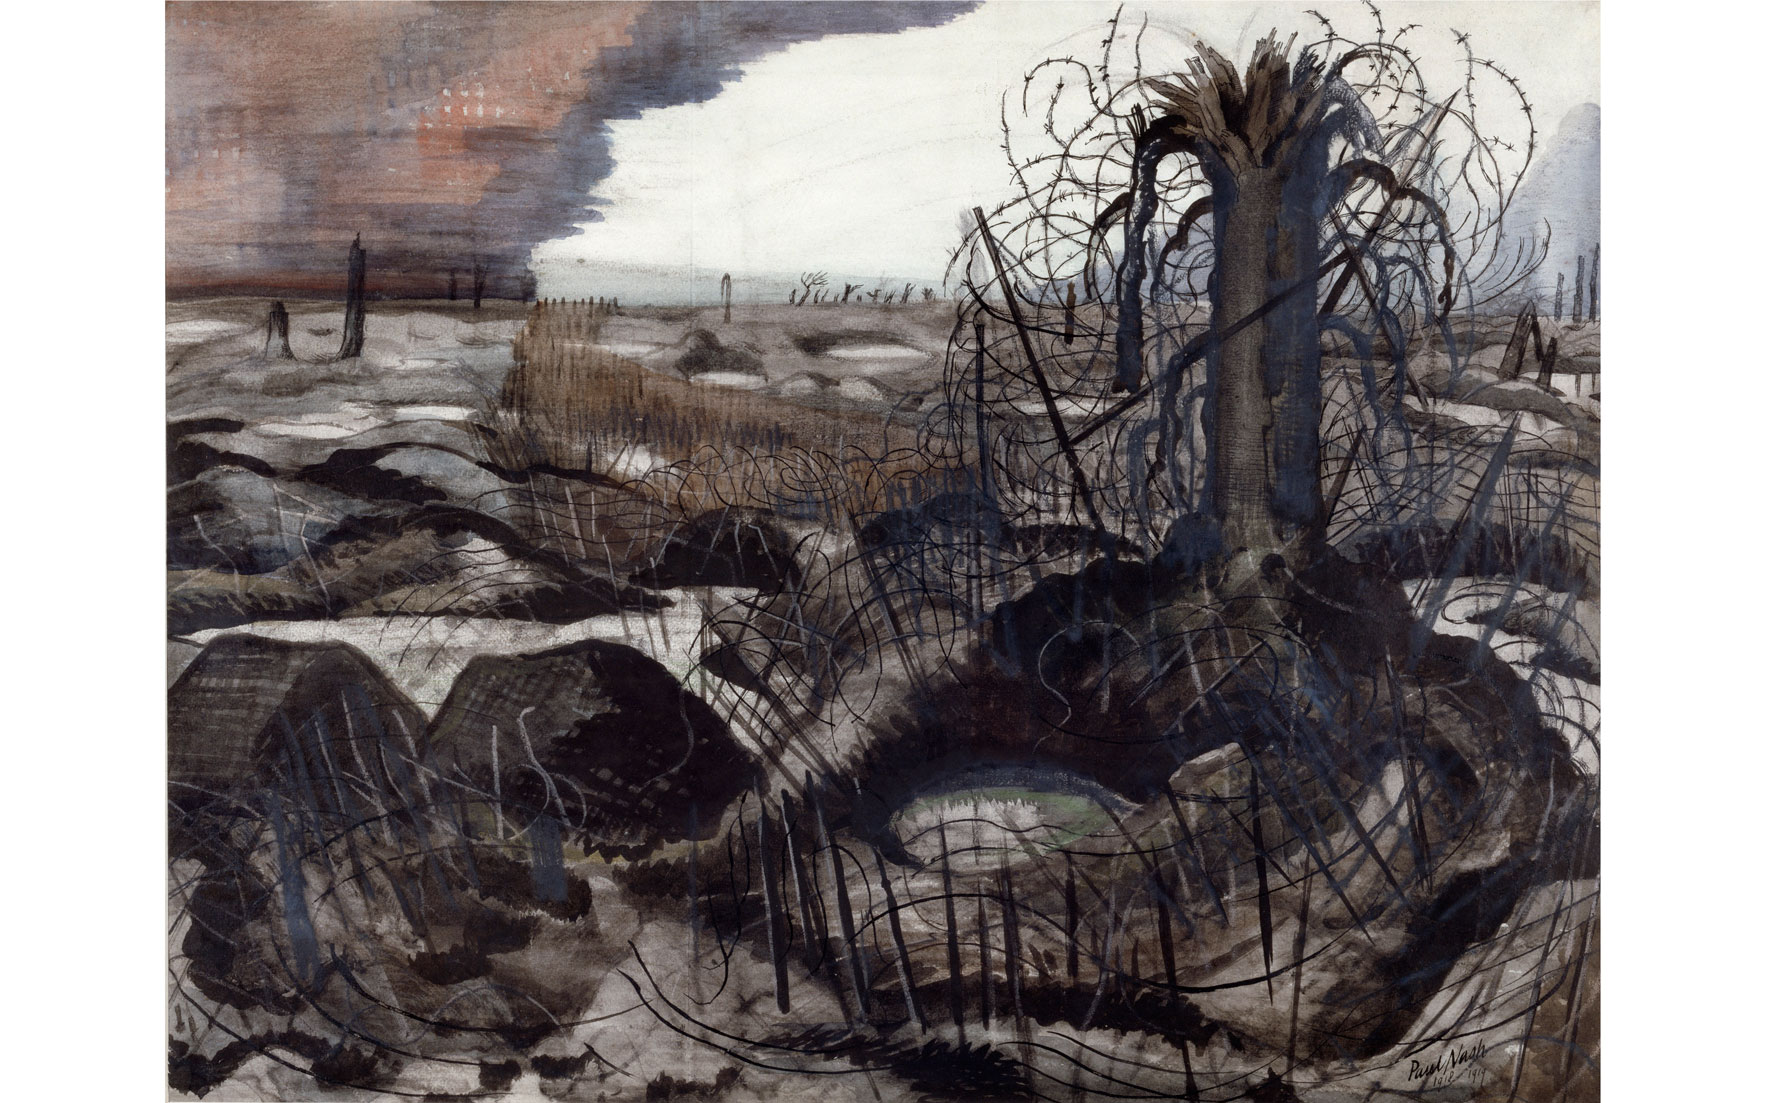 Paul Nash (1889-1946), Wire. 1918-19. Watercolour, chalk and ink on paper. 486 x 635 mm © IWM (Art.IWM ART 2705)